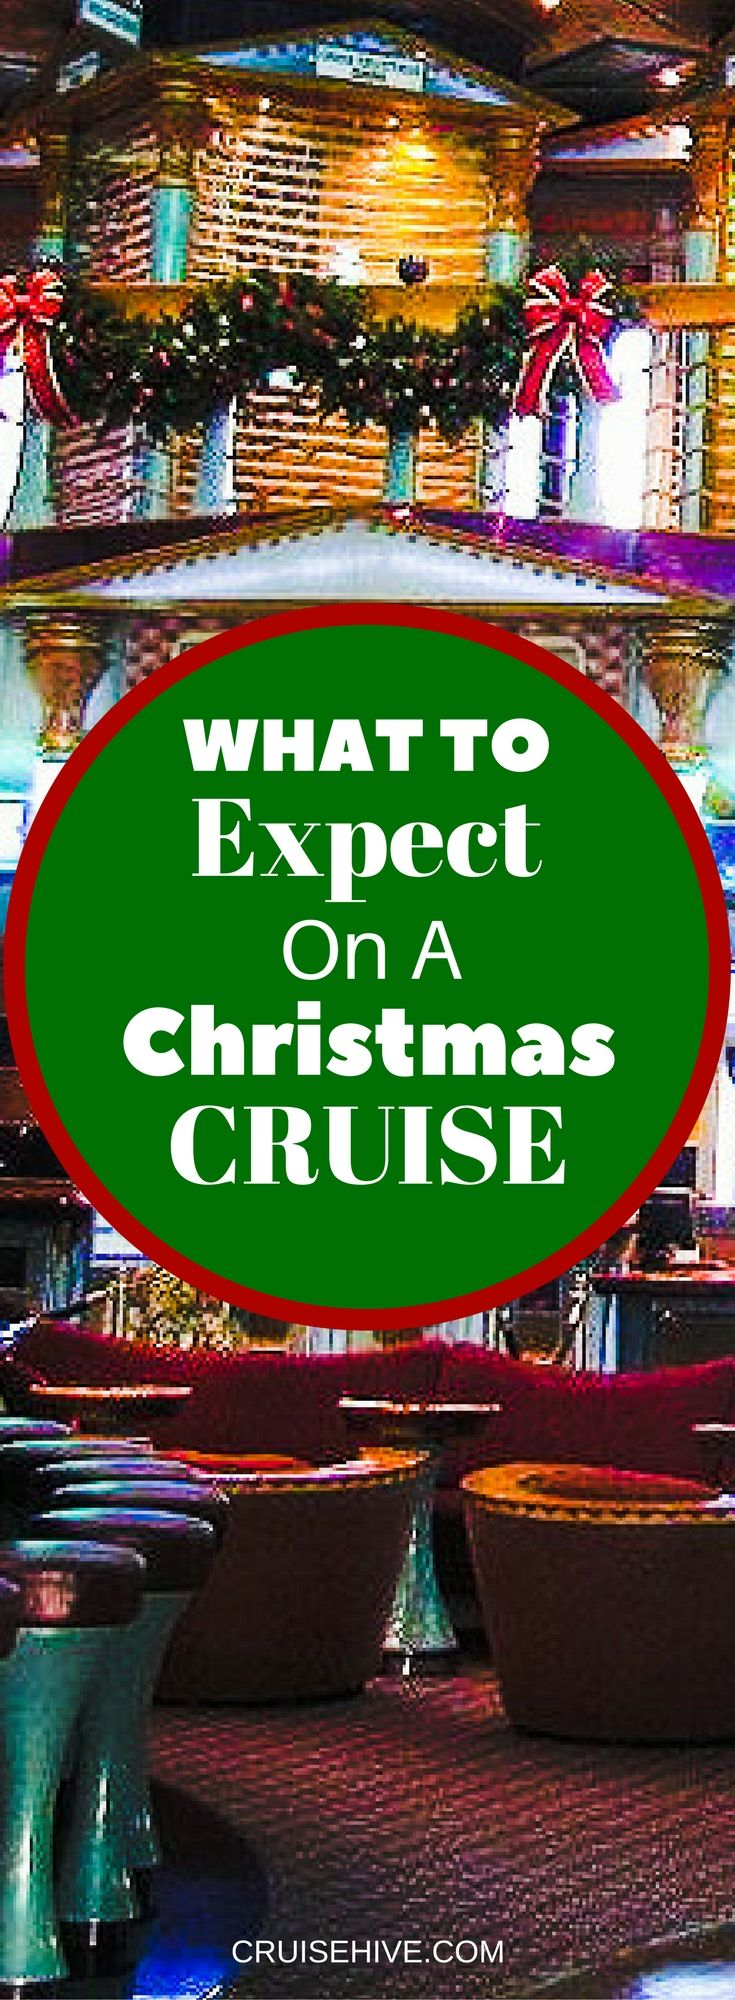 You might be thinking about getting away for Christmas for the first time. Here are tips and useful information on what to expect on a Christmas cruise vacation.